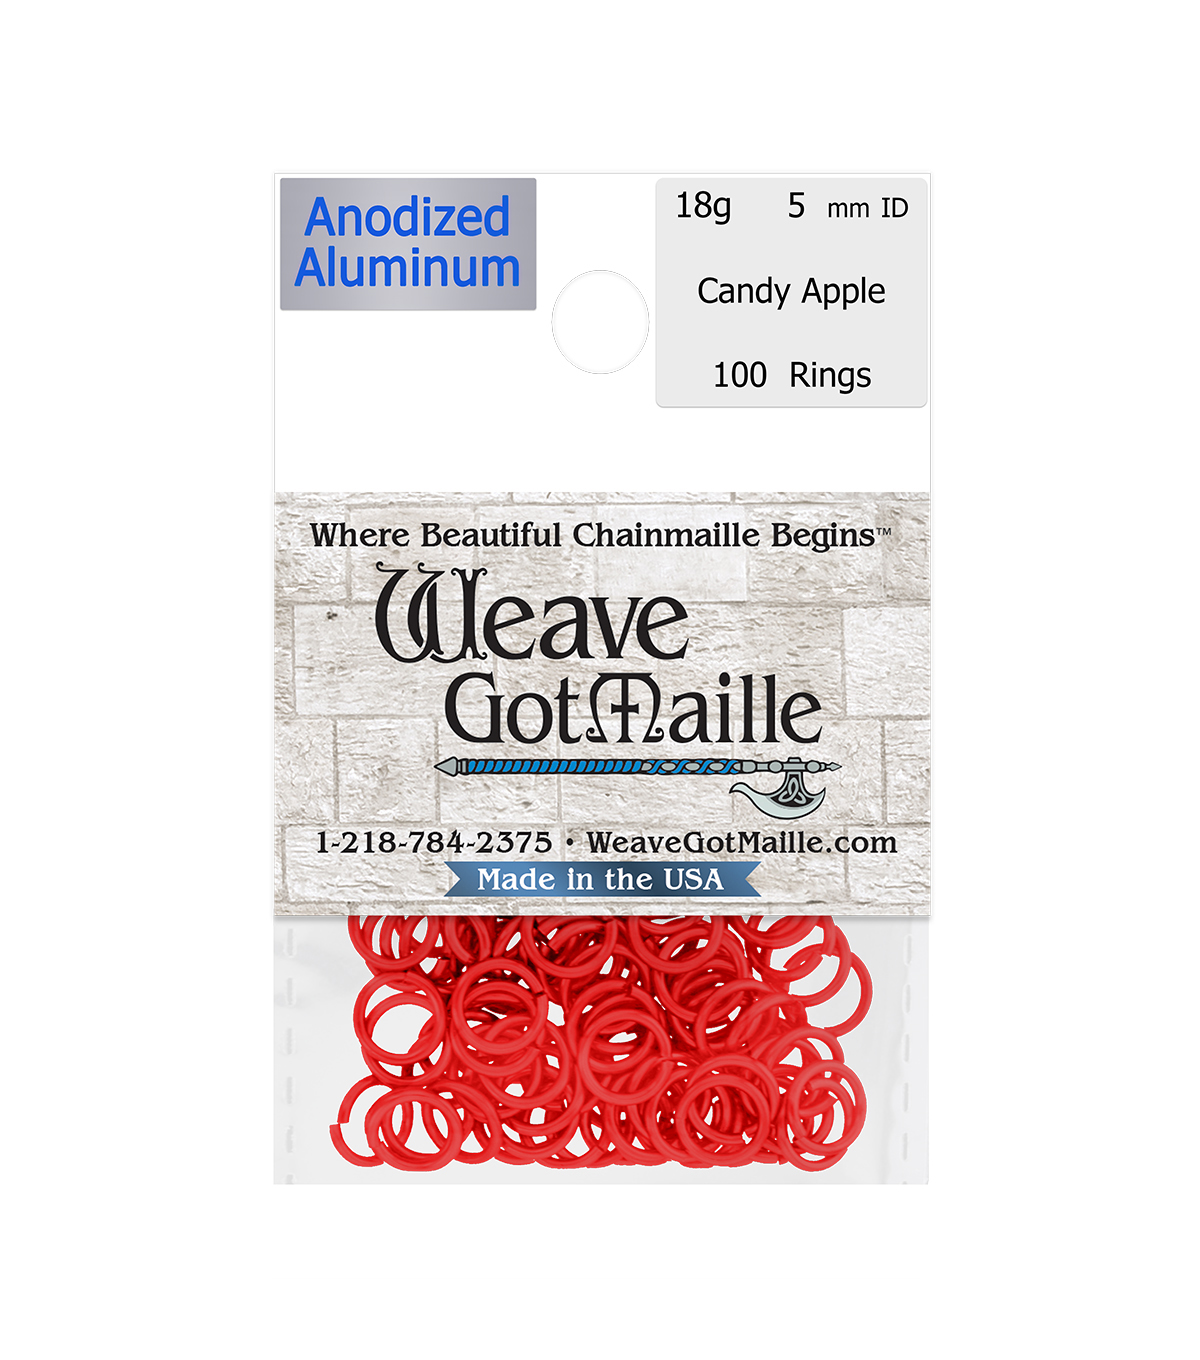 Weave Got Maille Pack of 100 5 mm Jump Rings-Candy Apple